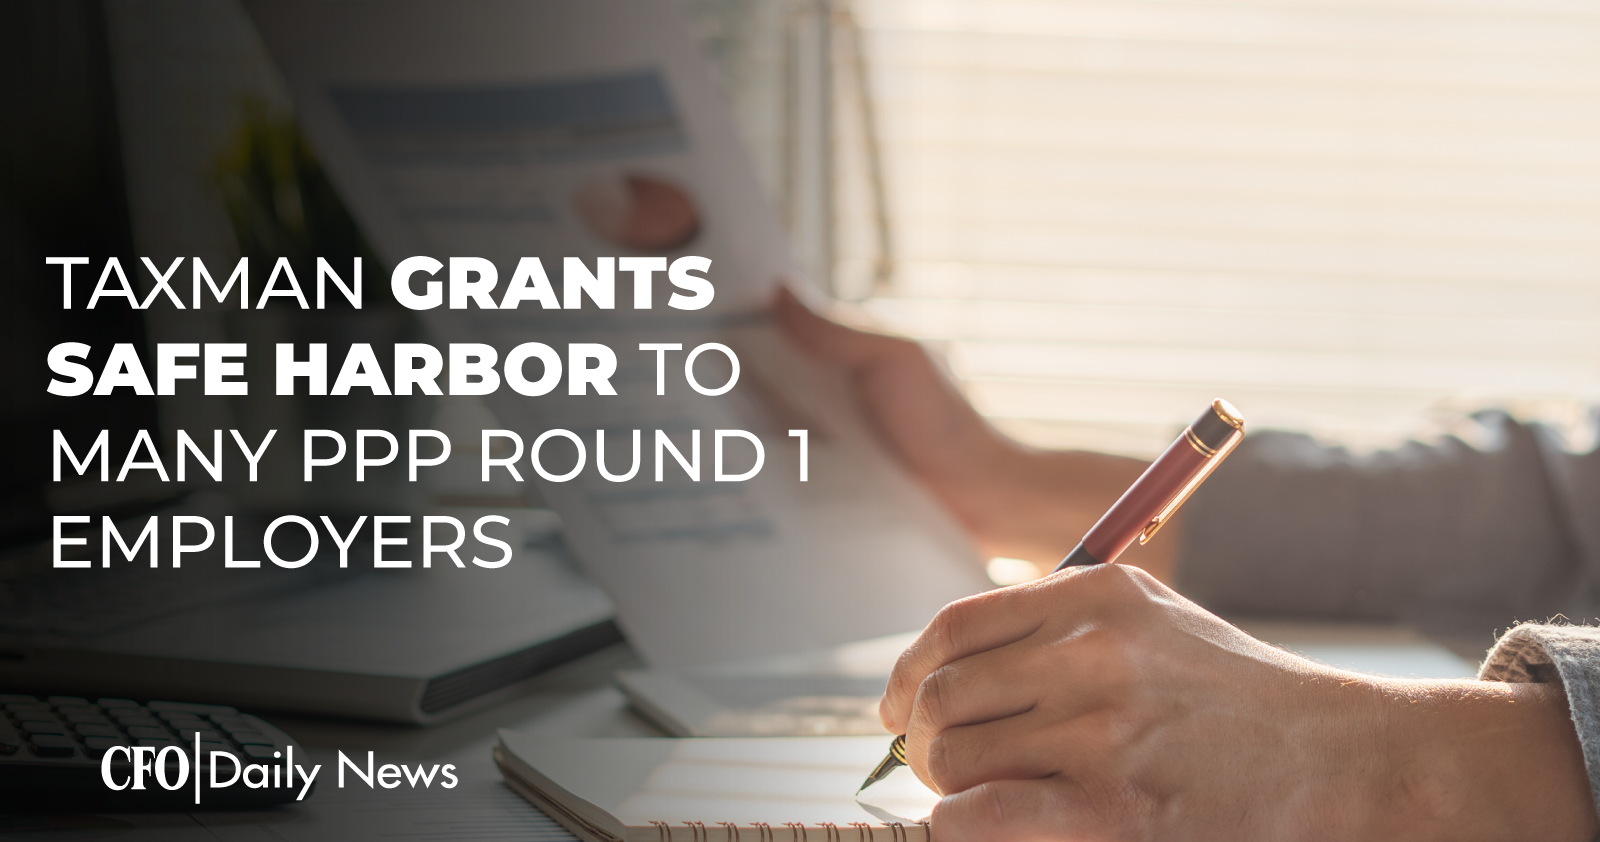 Taxman Grants Safe Harbor To Many PPP Round 1 Employers